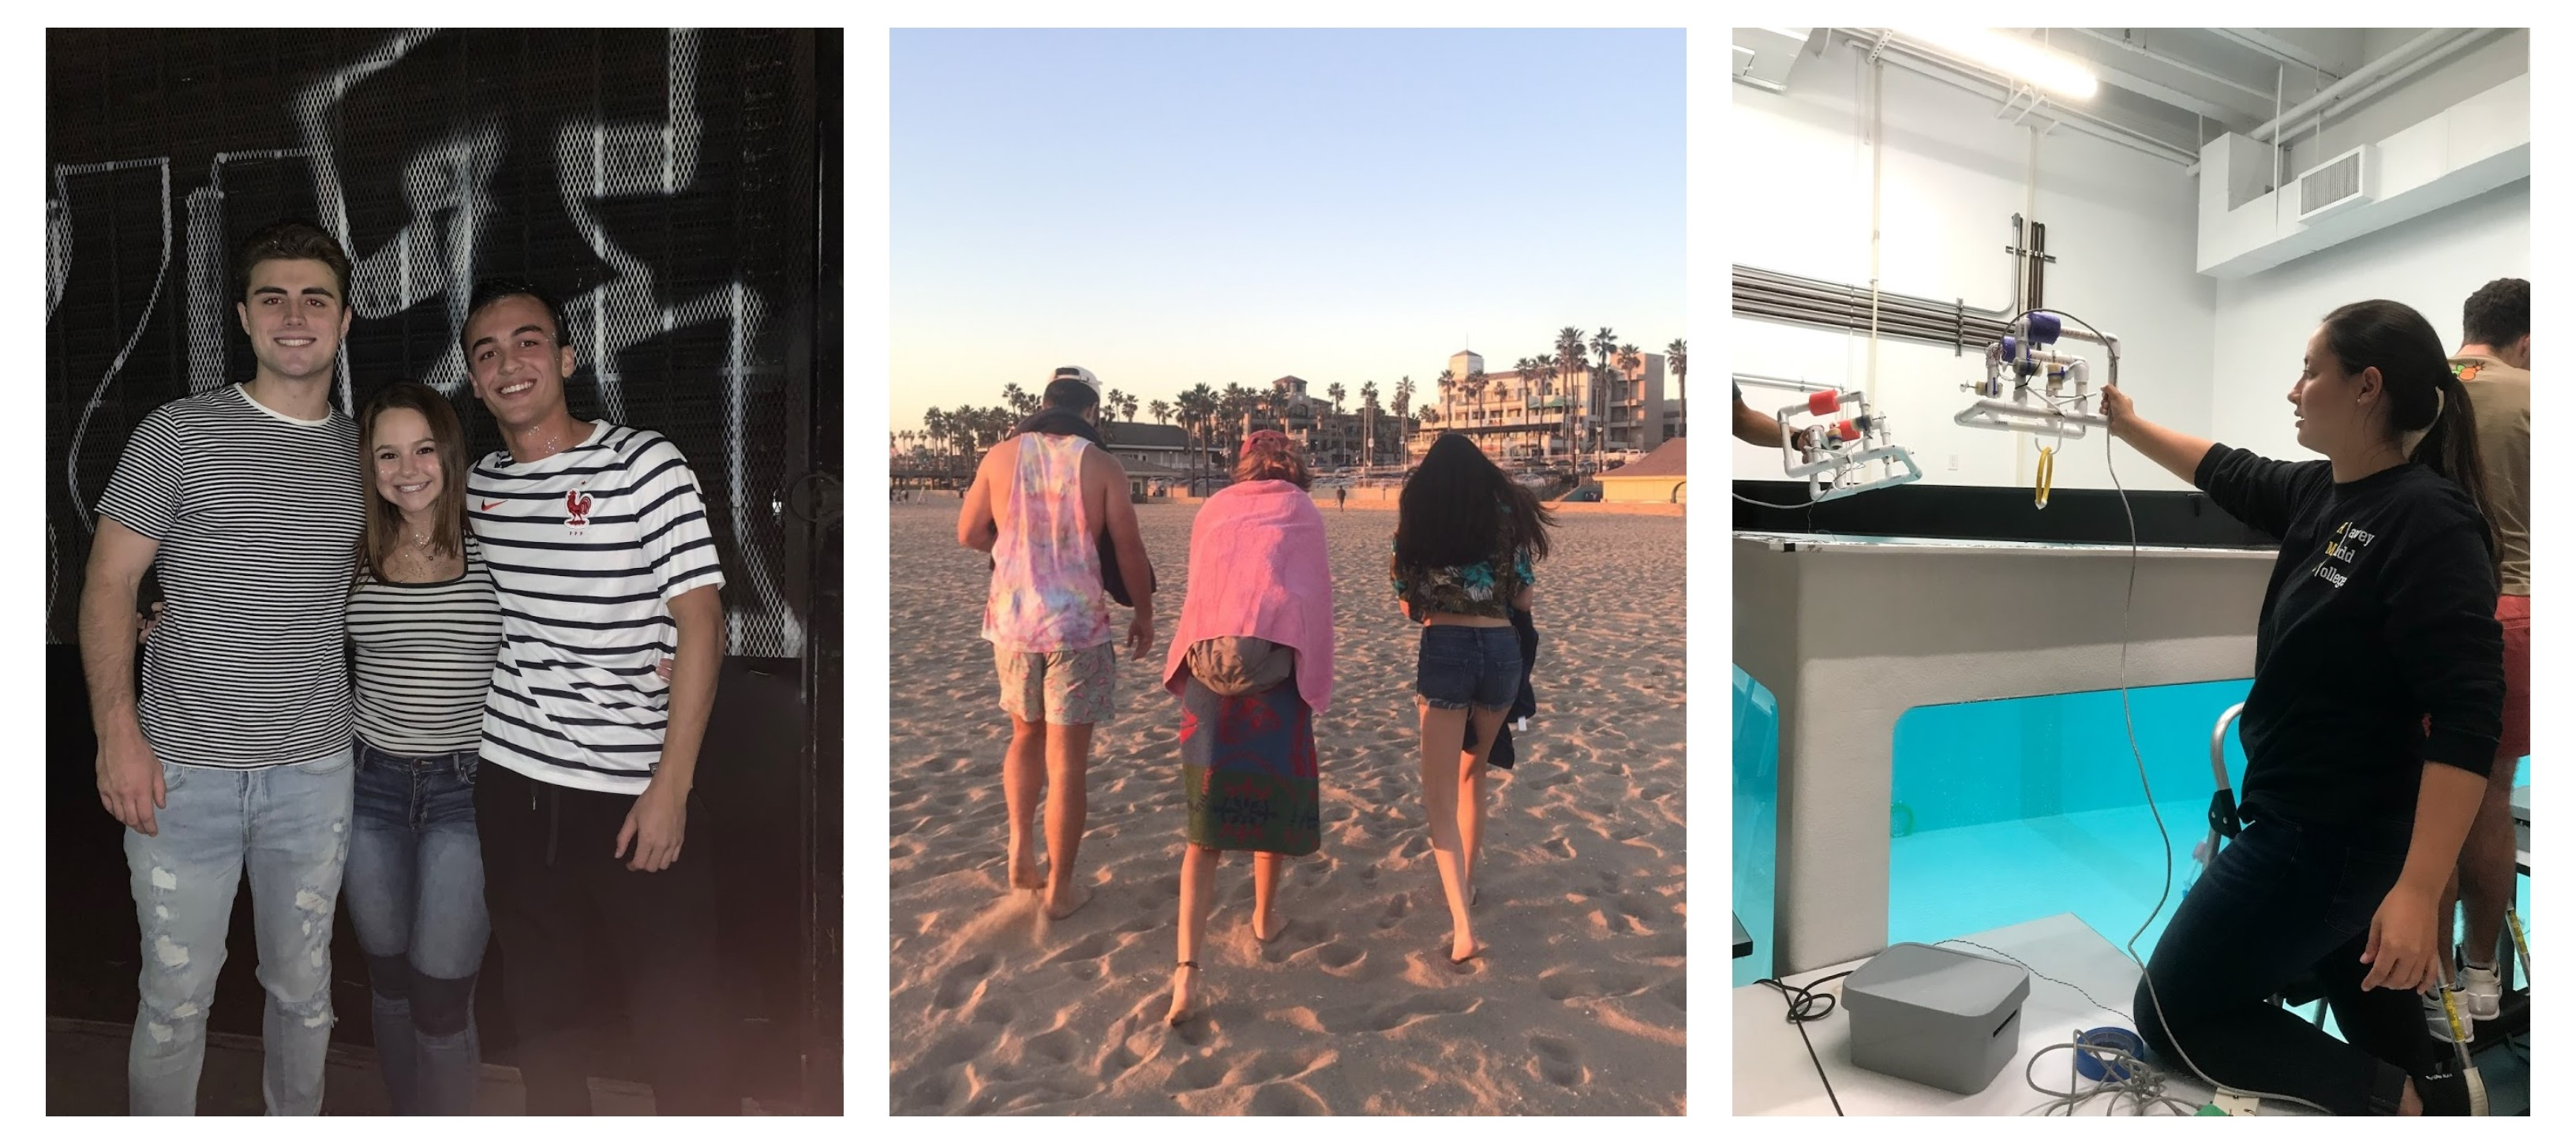 The left photo is of three Mudders in front of a grafitti wall. Middle photo is three people walking on the beach not facing the camera. The right photo is a girl with a PVC robot in front of a tank.